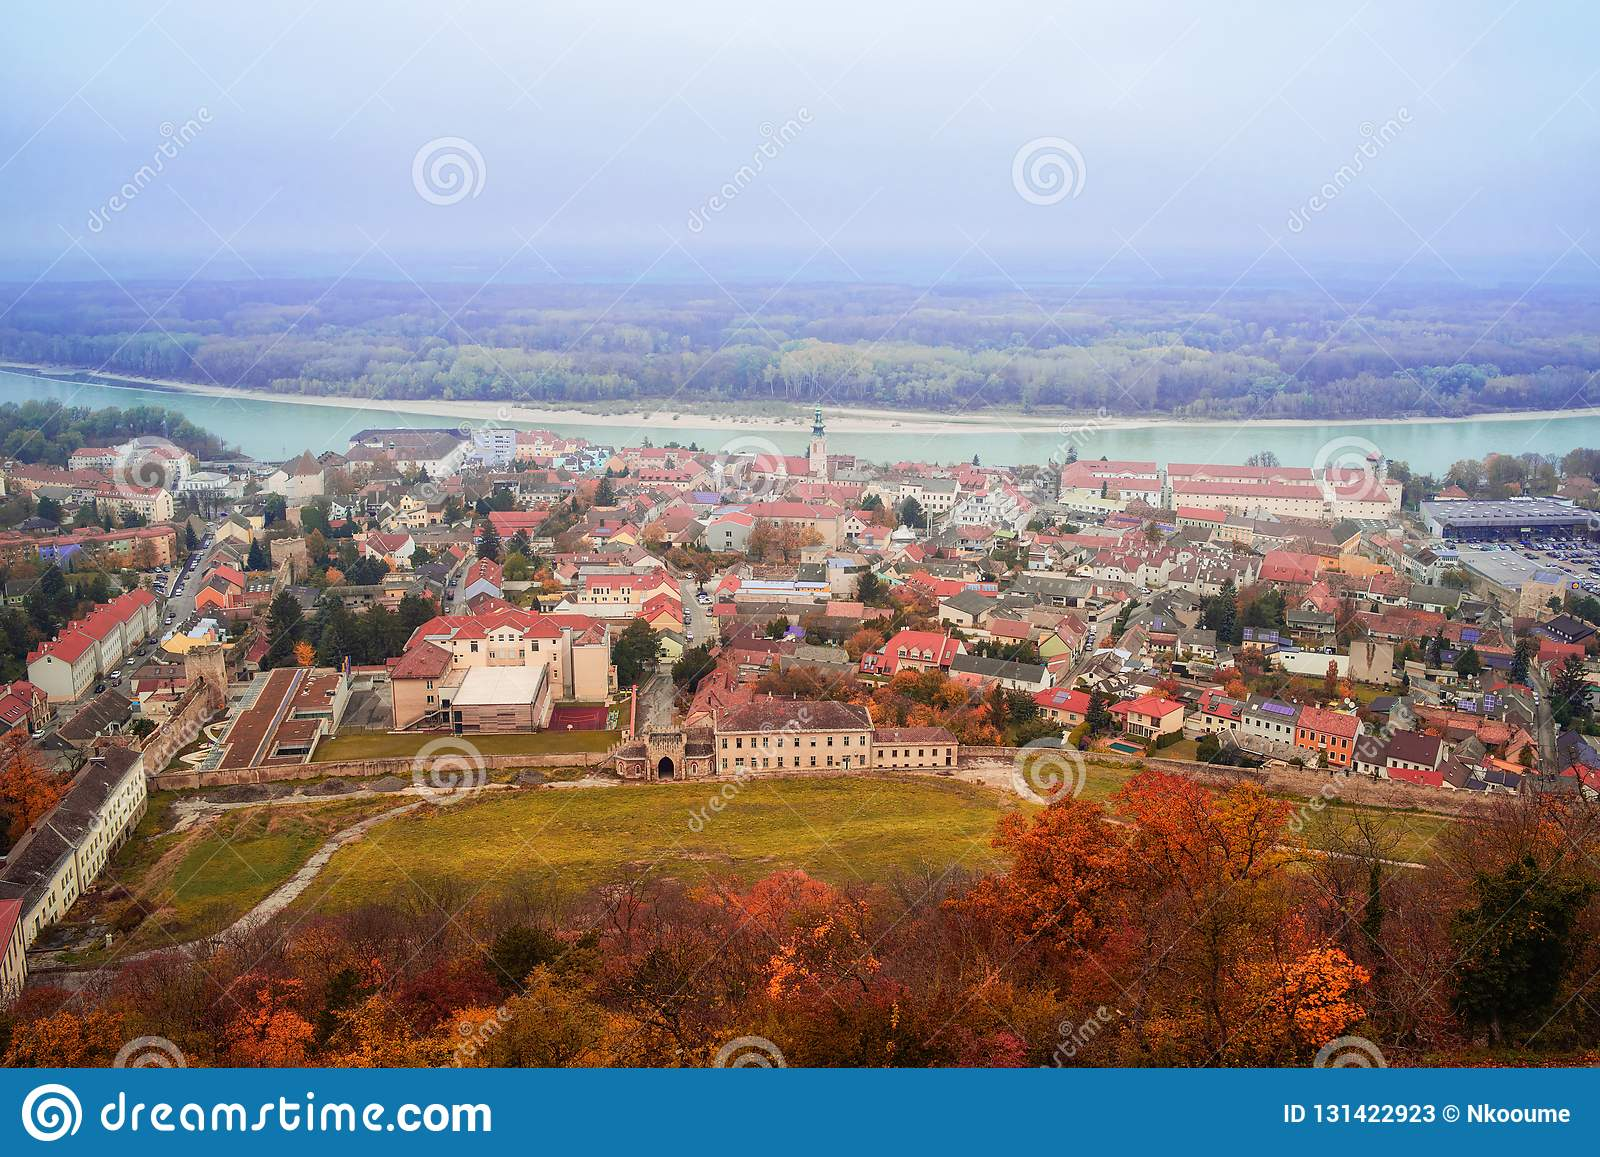 View of the city of Highburg on the Danube from the top. Austria, Europe.